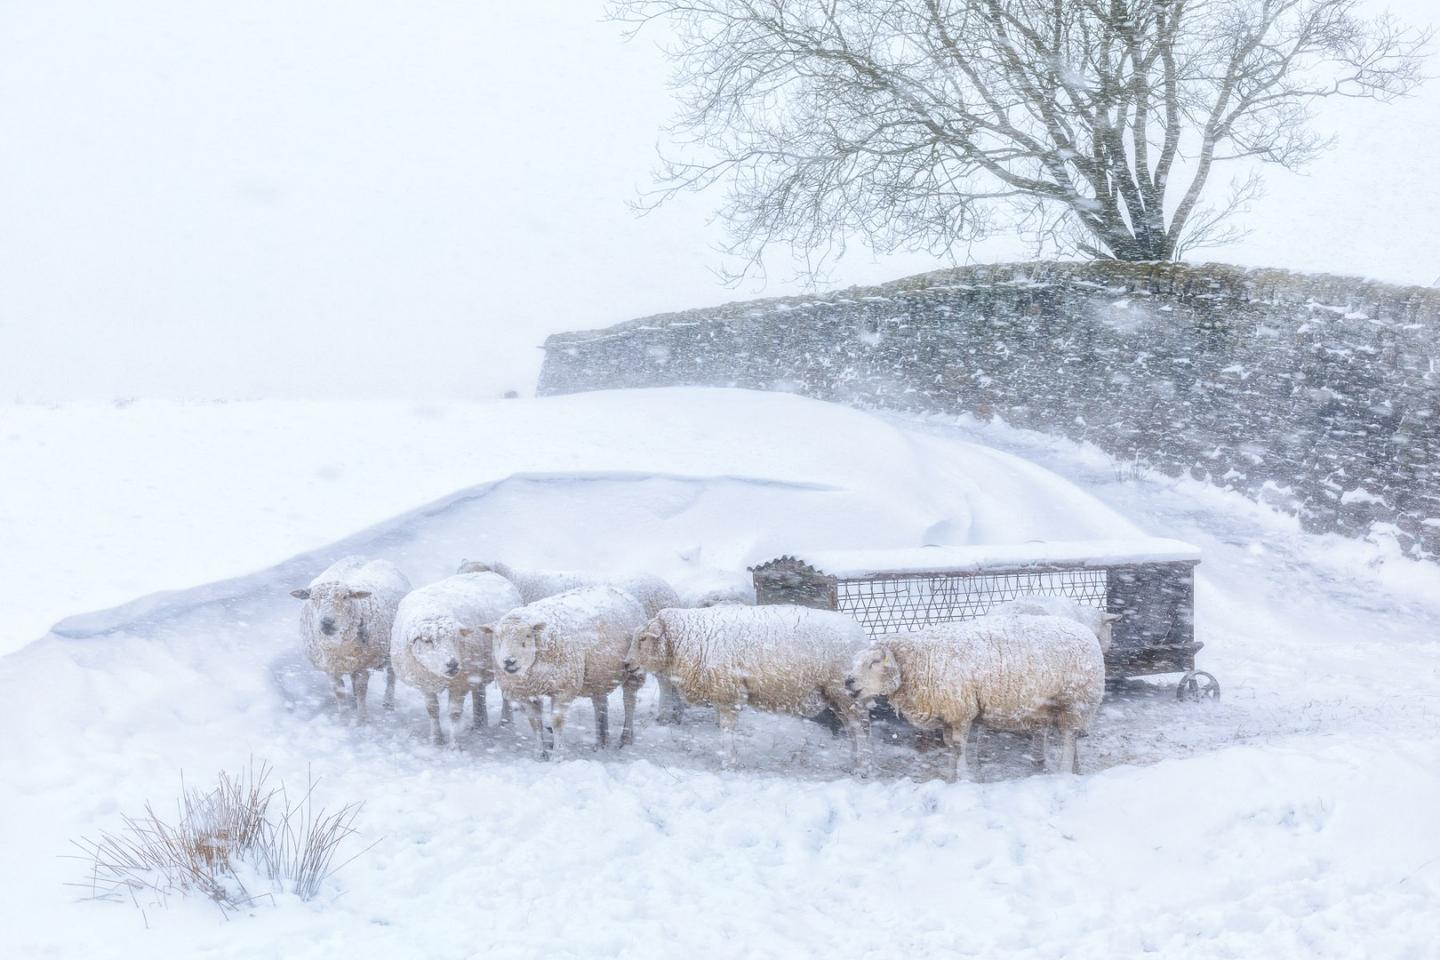 Overall Winner and Light on the Land – Winner, Robert Birkby (UK). Near Hebden Bridge, West Yorkshire, England. Much of the higher ground in the South Pennines is relatively featureless, but these sheep had found shelter between a snowdrift and dry stone wall.